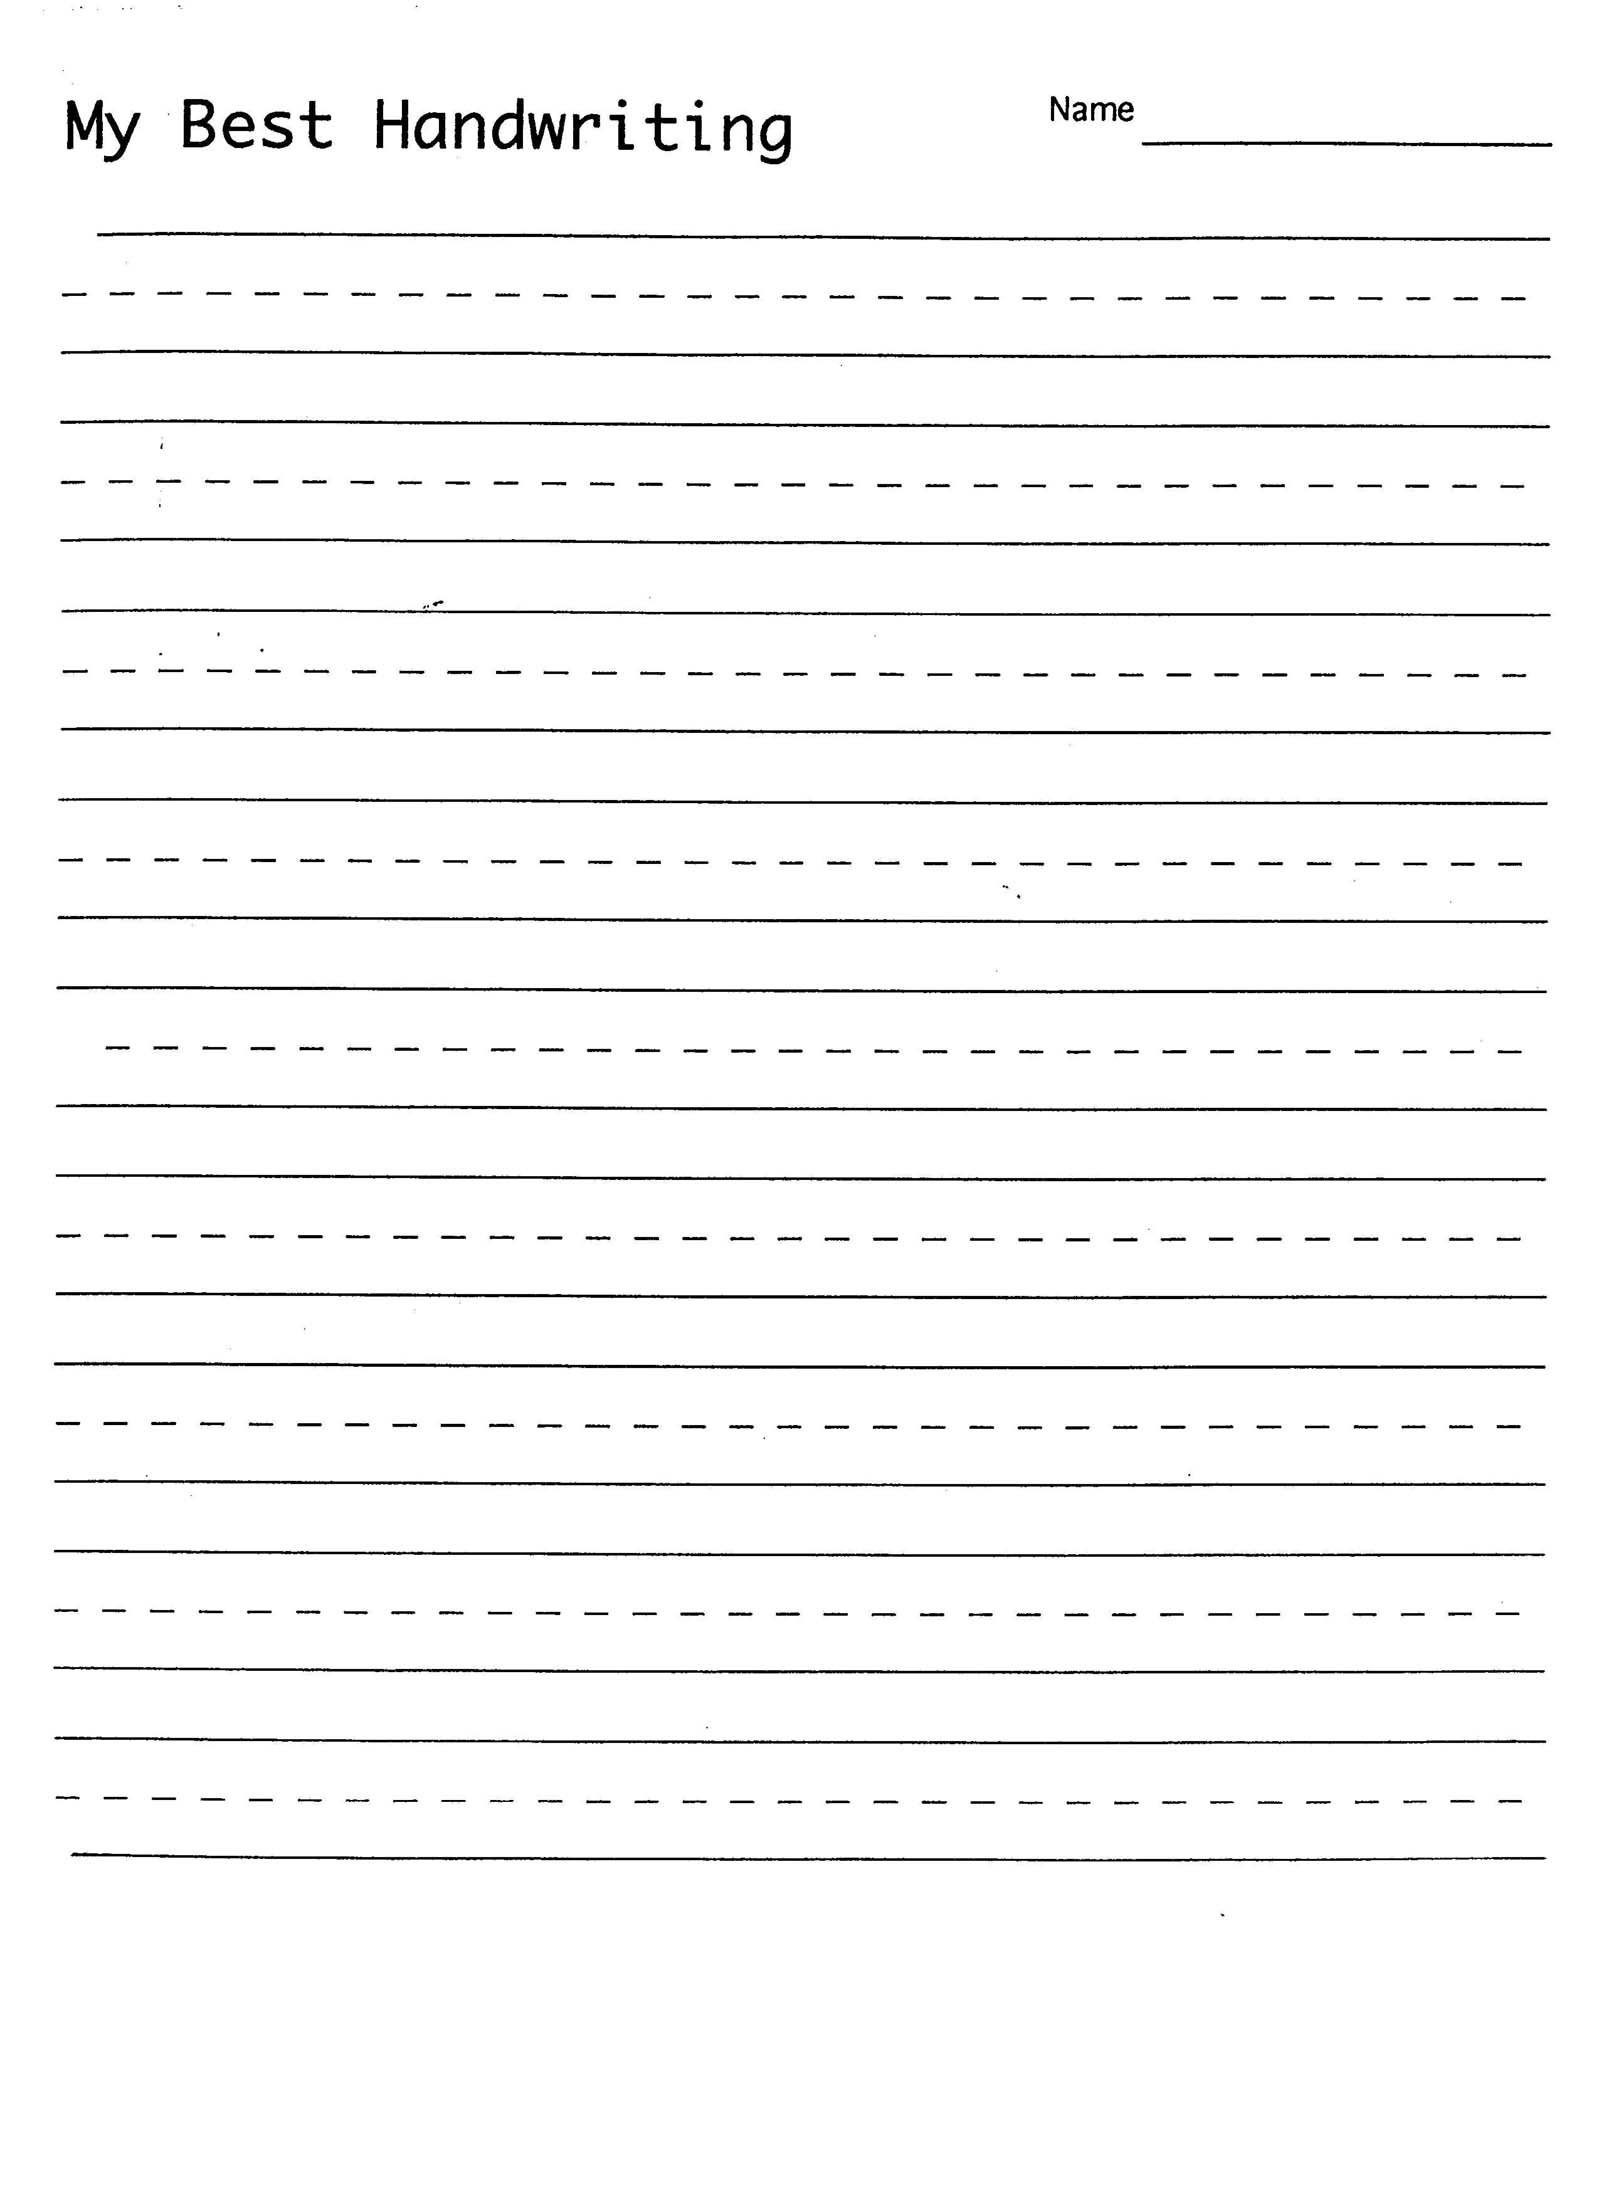 Worksheet Writing Sheets writing practice homework handwriting sheets ks worksheets coffemix